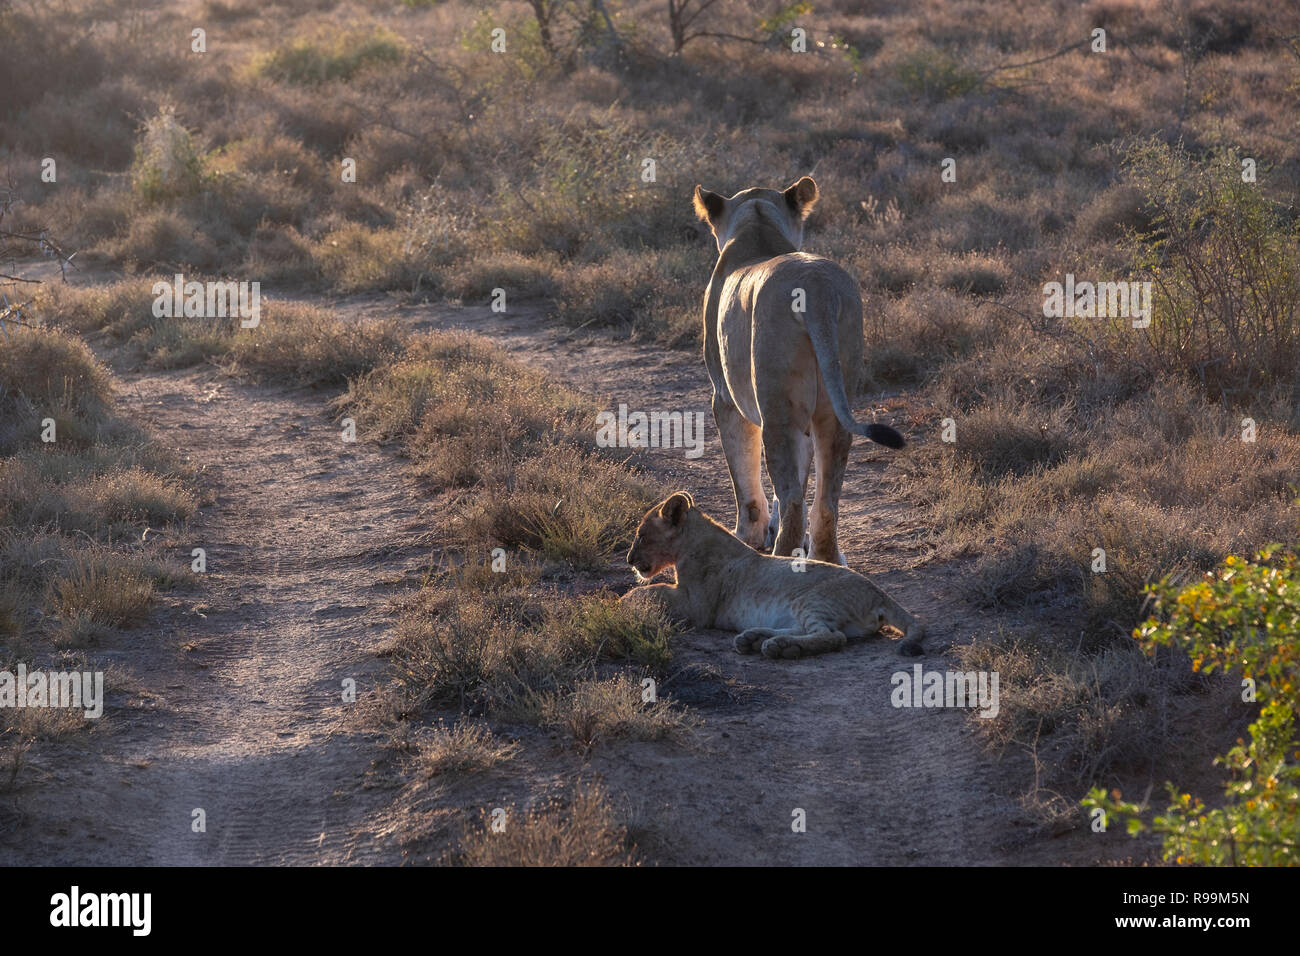 Lioness and a cub on the move early morning - Stock Image